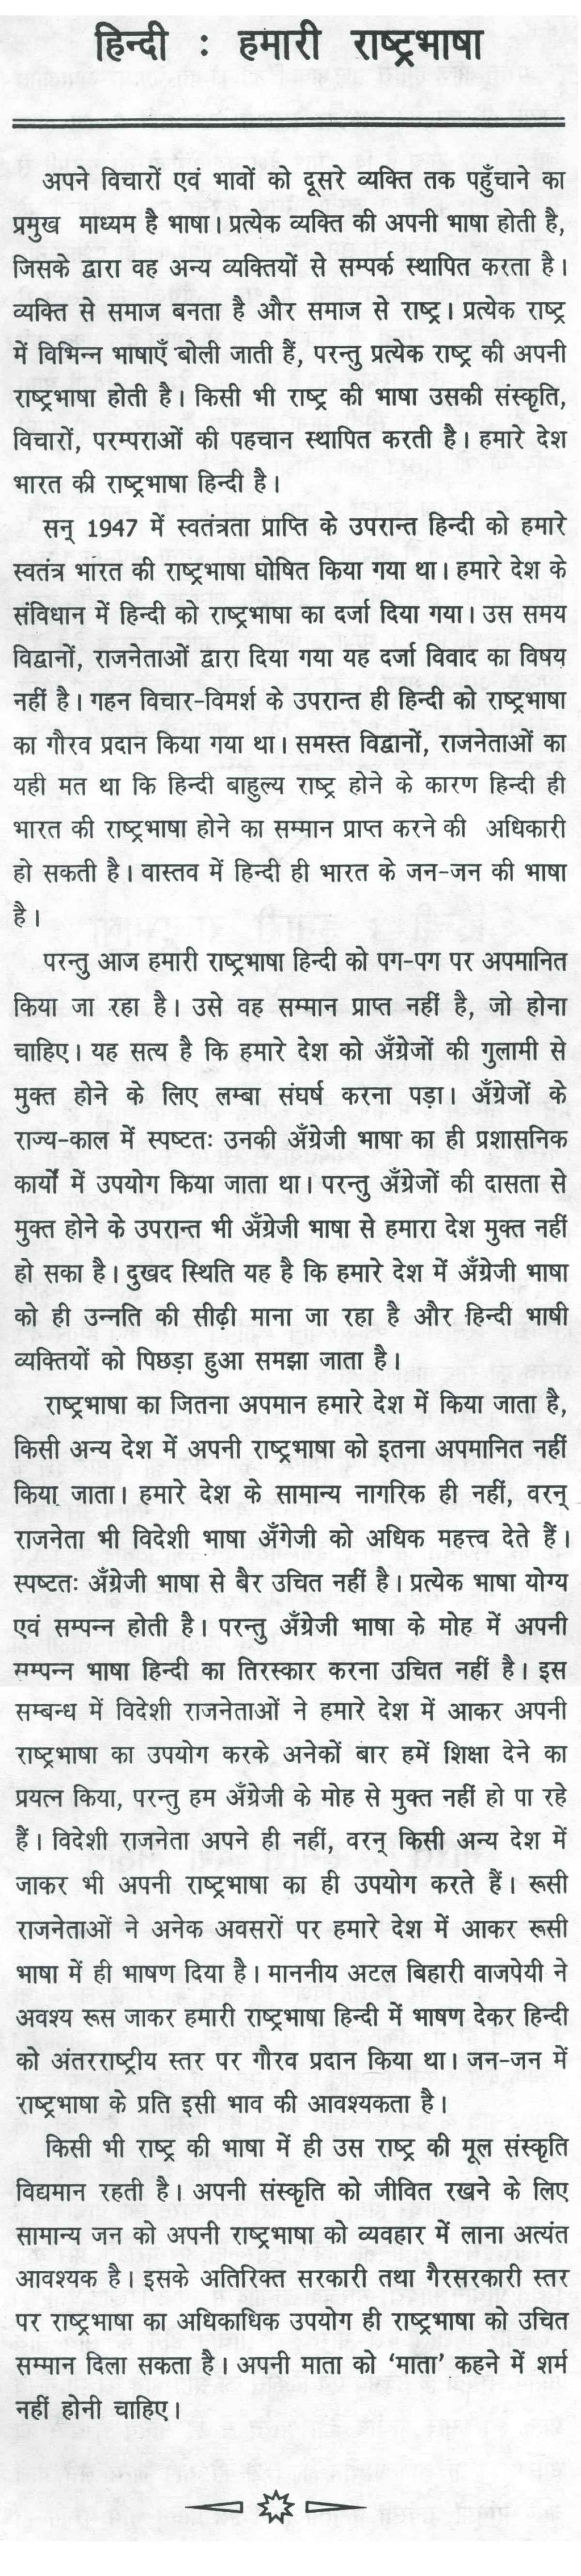 013 Essay On Unity In Hindi Example Ideas Of Our National Language Fancy Book For Class Fascinating Importance Diversity 1920